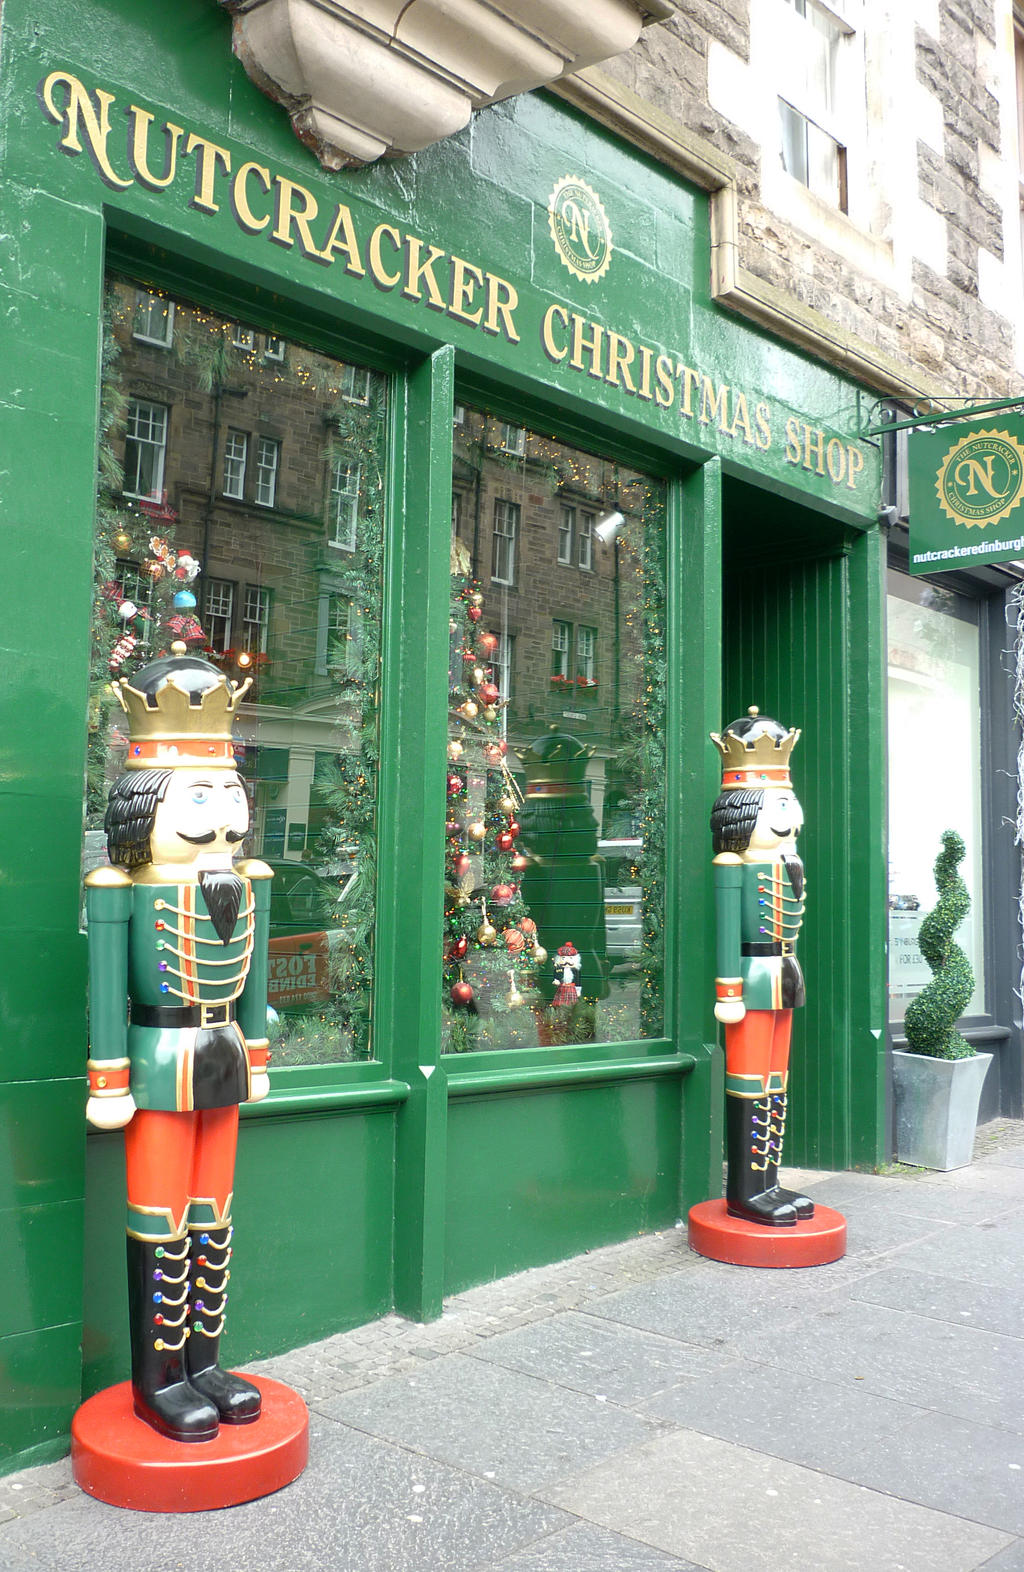 Step into Christmas at The Nutcracker Christmas Shop, where you'll find beautiful, Christmas gift ideas. As well as German wooden nutcrackers from Steinbach and Ulbricht, and traditional carved smoking men, you'll find exquisite wooden nativity figures in little wooden nativity stables.